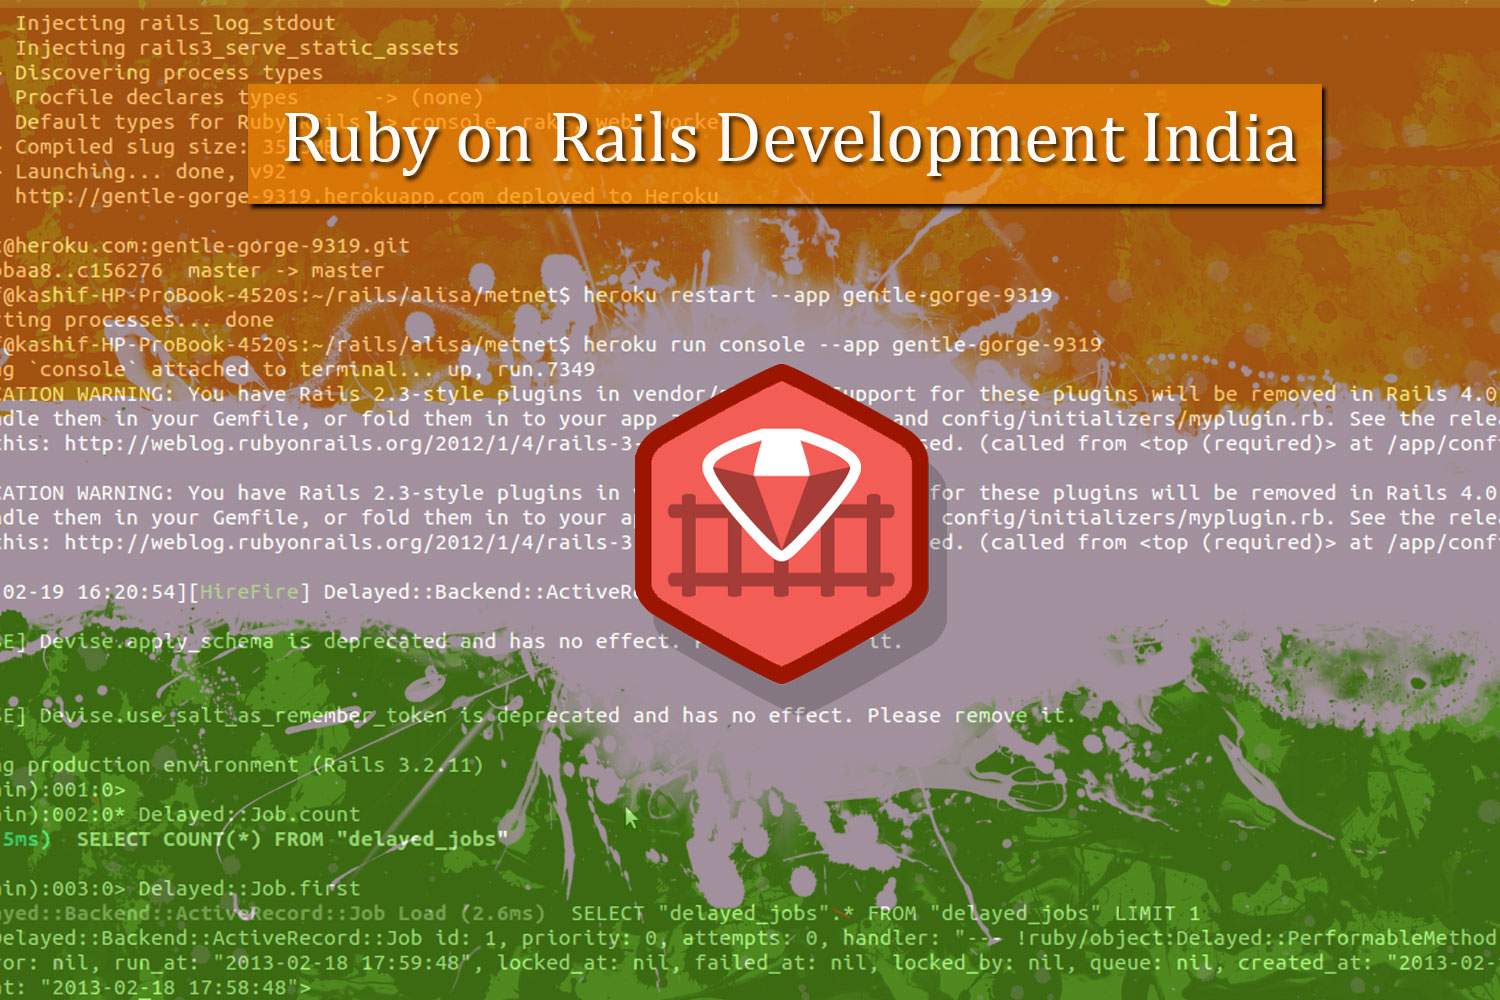 World's Most Emerging Ruby on Rails Development Company based in Ahmedabad, India